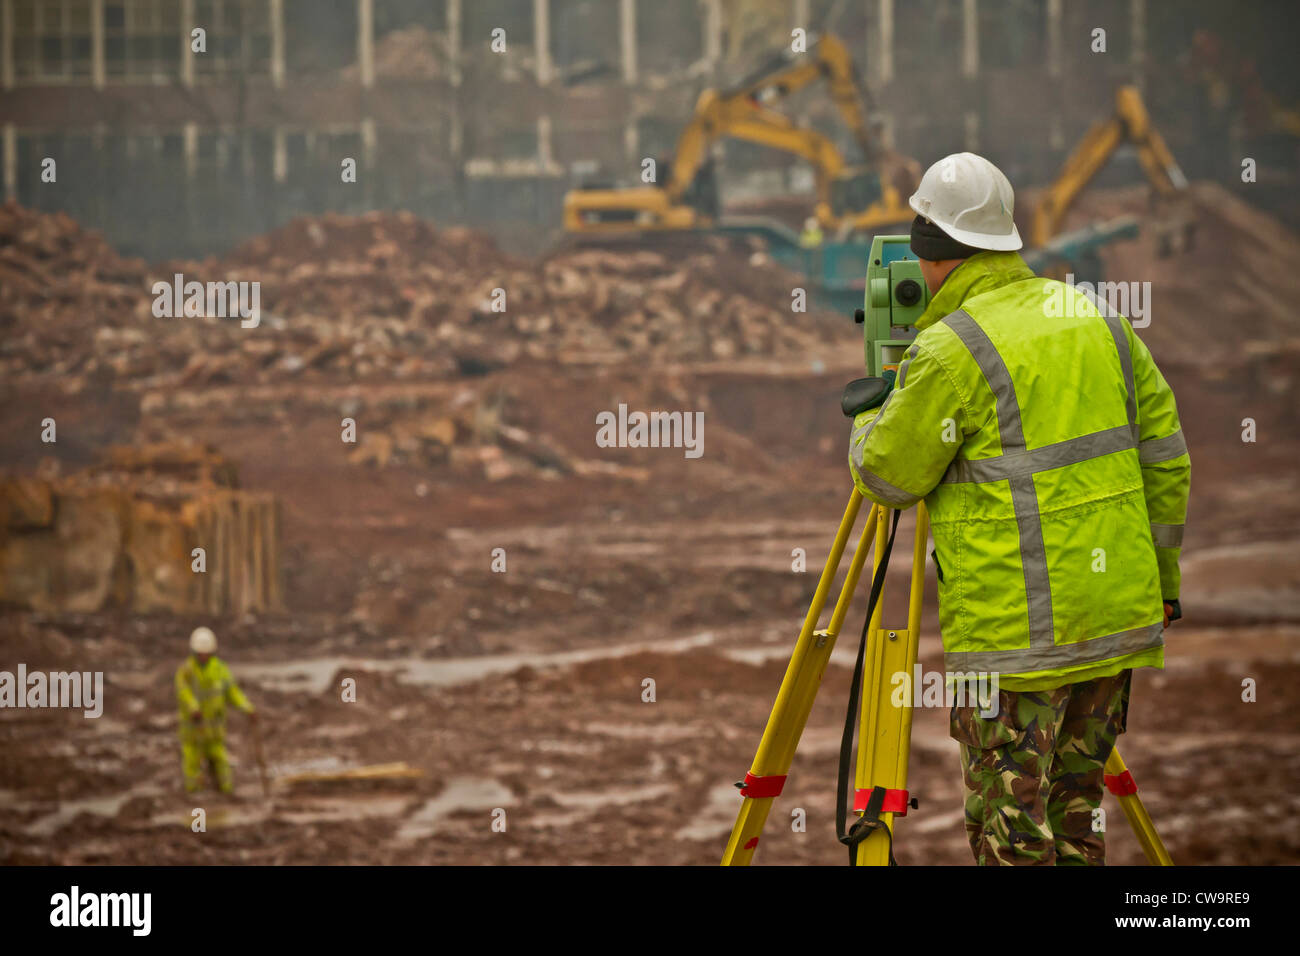 Surveyor on a demolition site, Birmingham, Enlgland - Stock Image